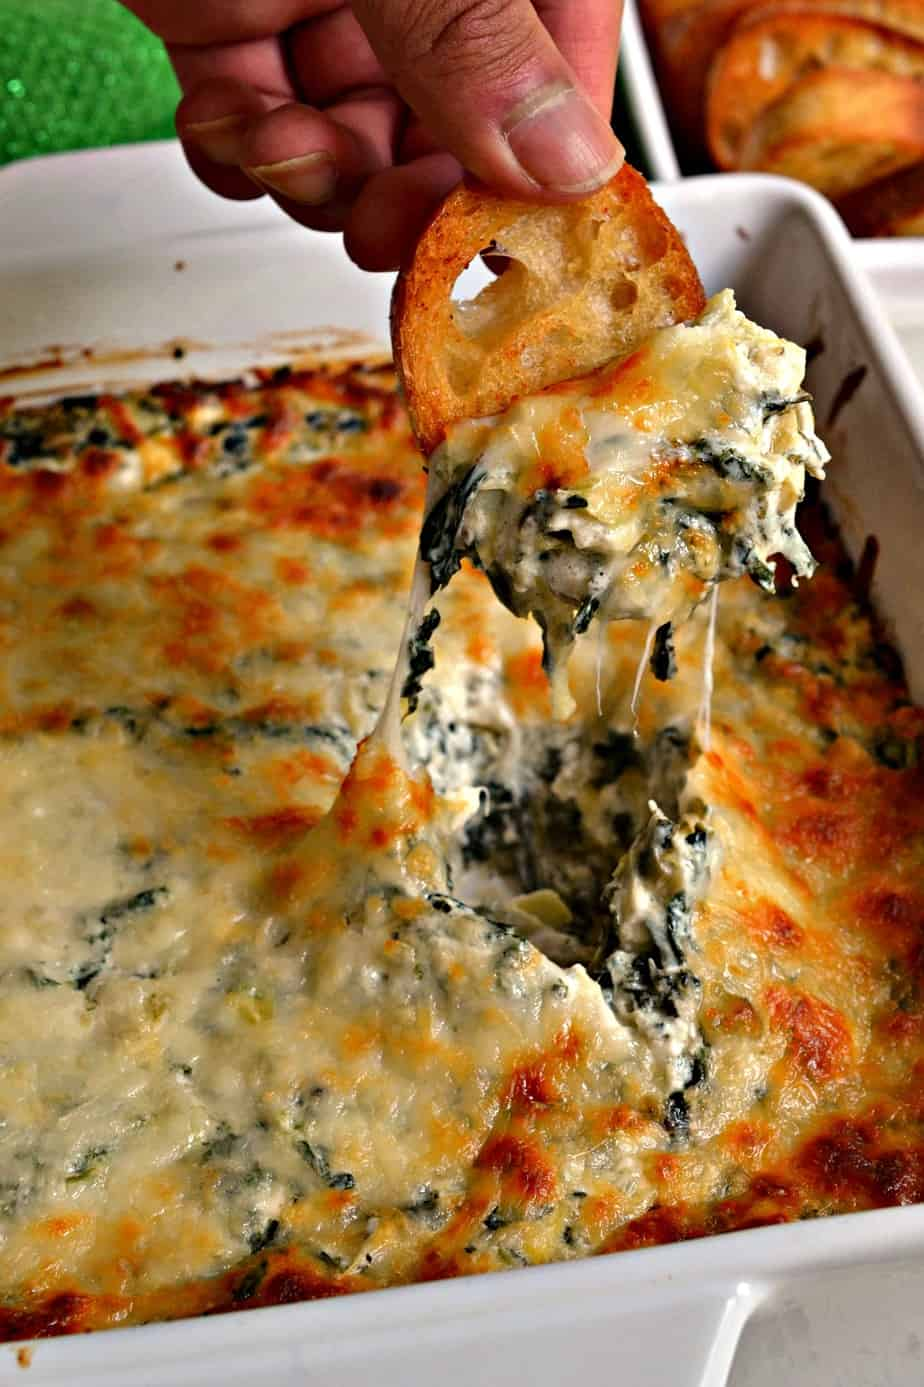 This Hot Spinach Artichoke Dip is a creamy cheesy delectable dip with garlic, Parmesan cheese, spinach and artichoke hearts.